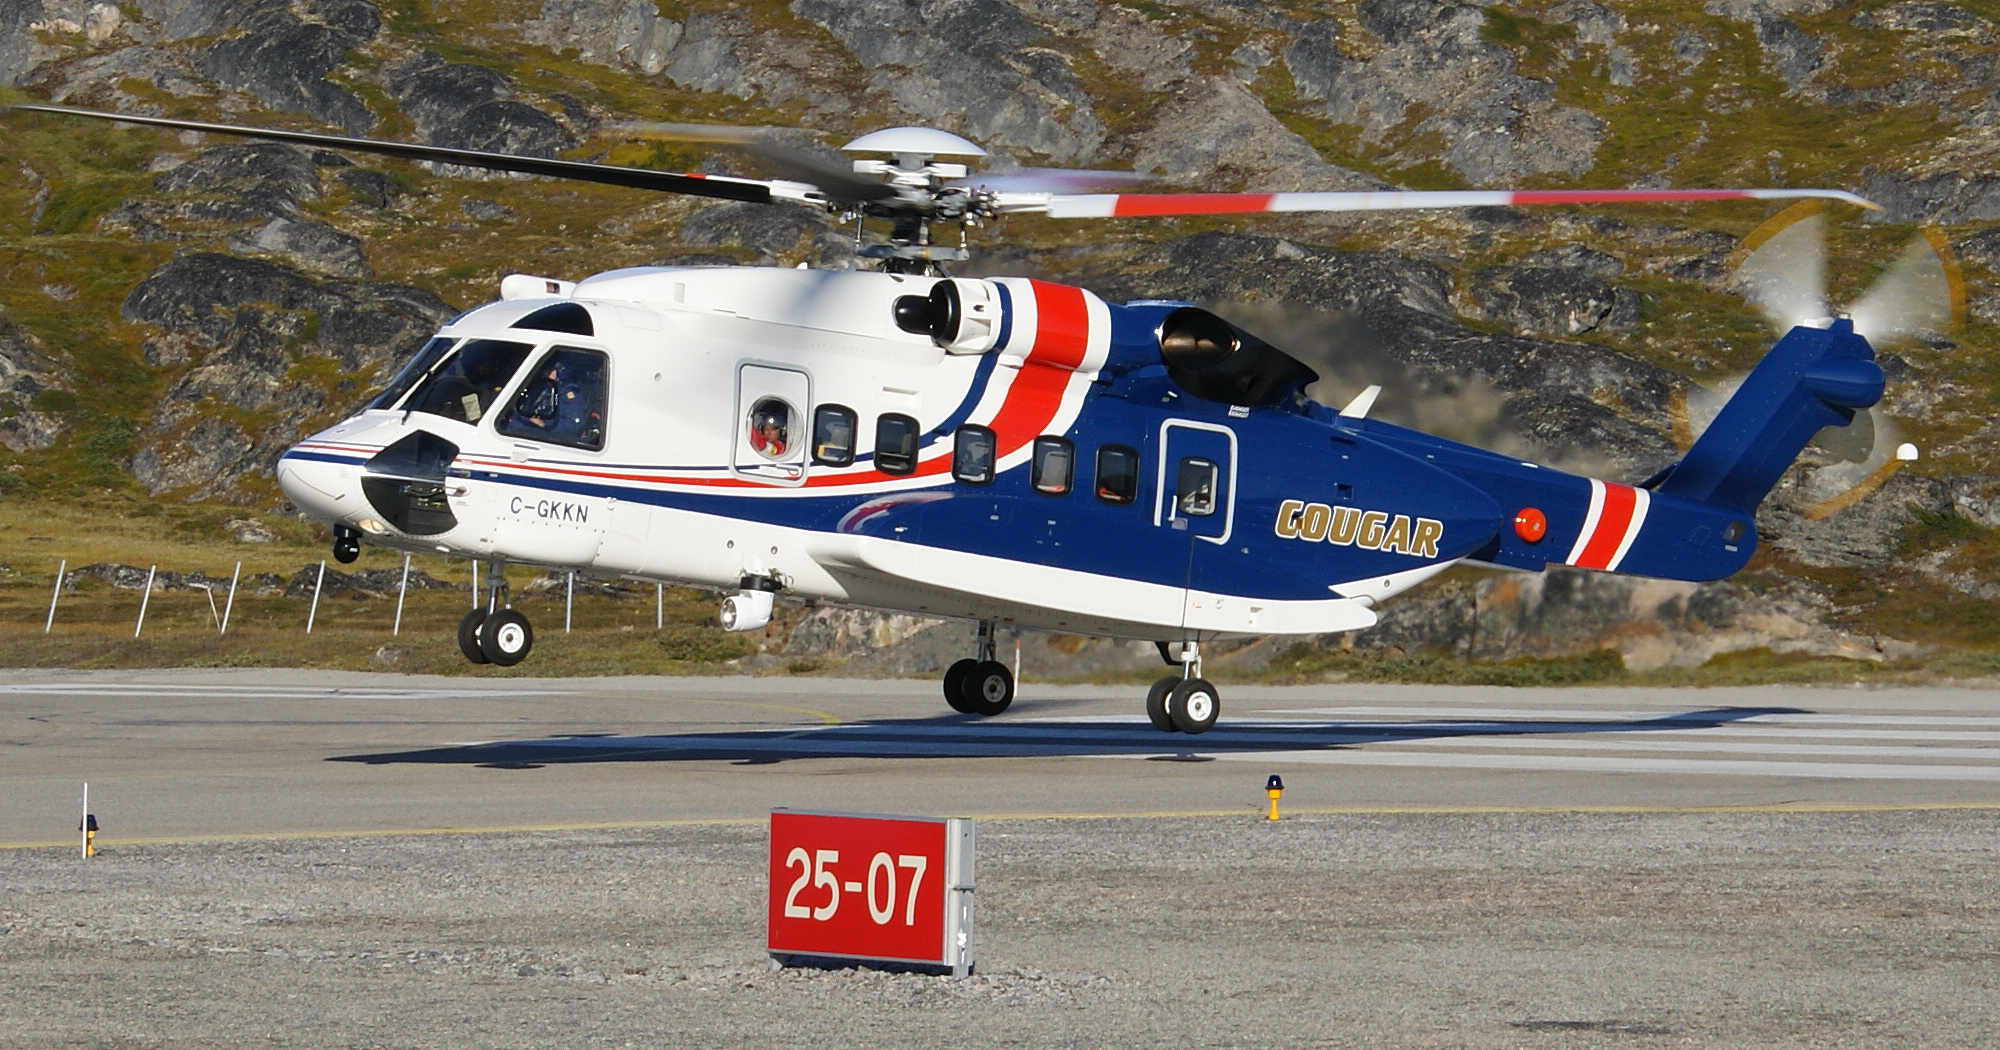 phi helicopter with File Sikorsky S92 Cougar Helicopters Ilulissat Airport on 920104 besides 1615 furthermore Tour skytour as well File Sikorsky S92 Cougar Helicopters Ilulissat Airport moreover 5295719618.